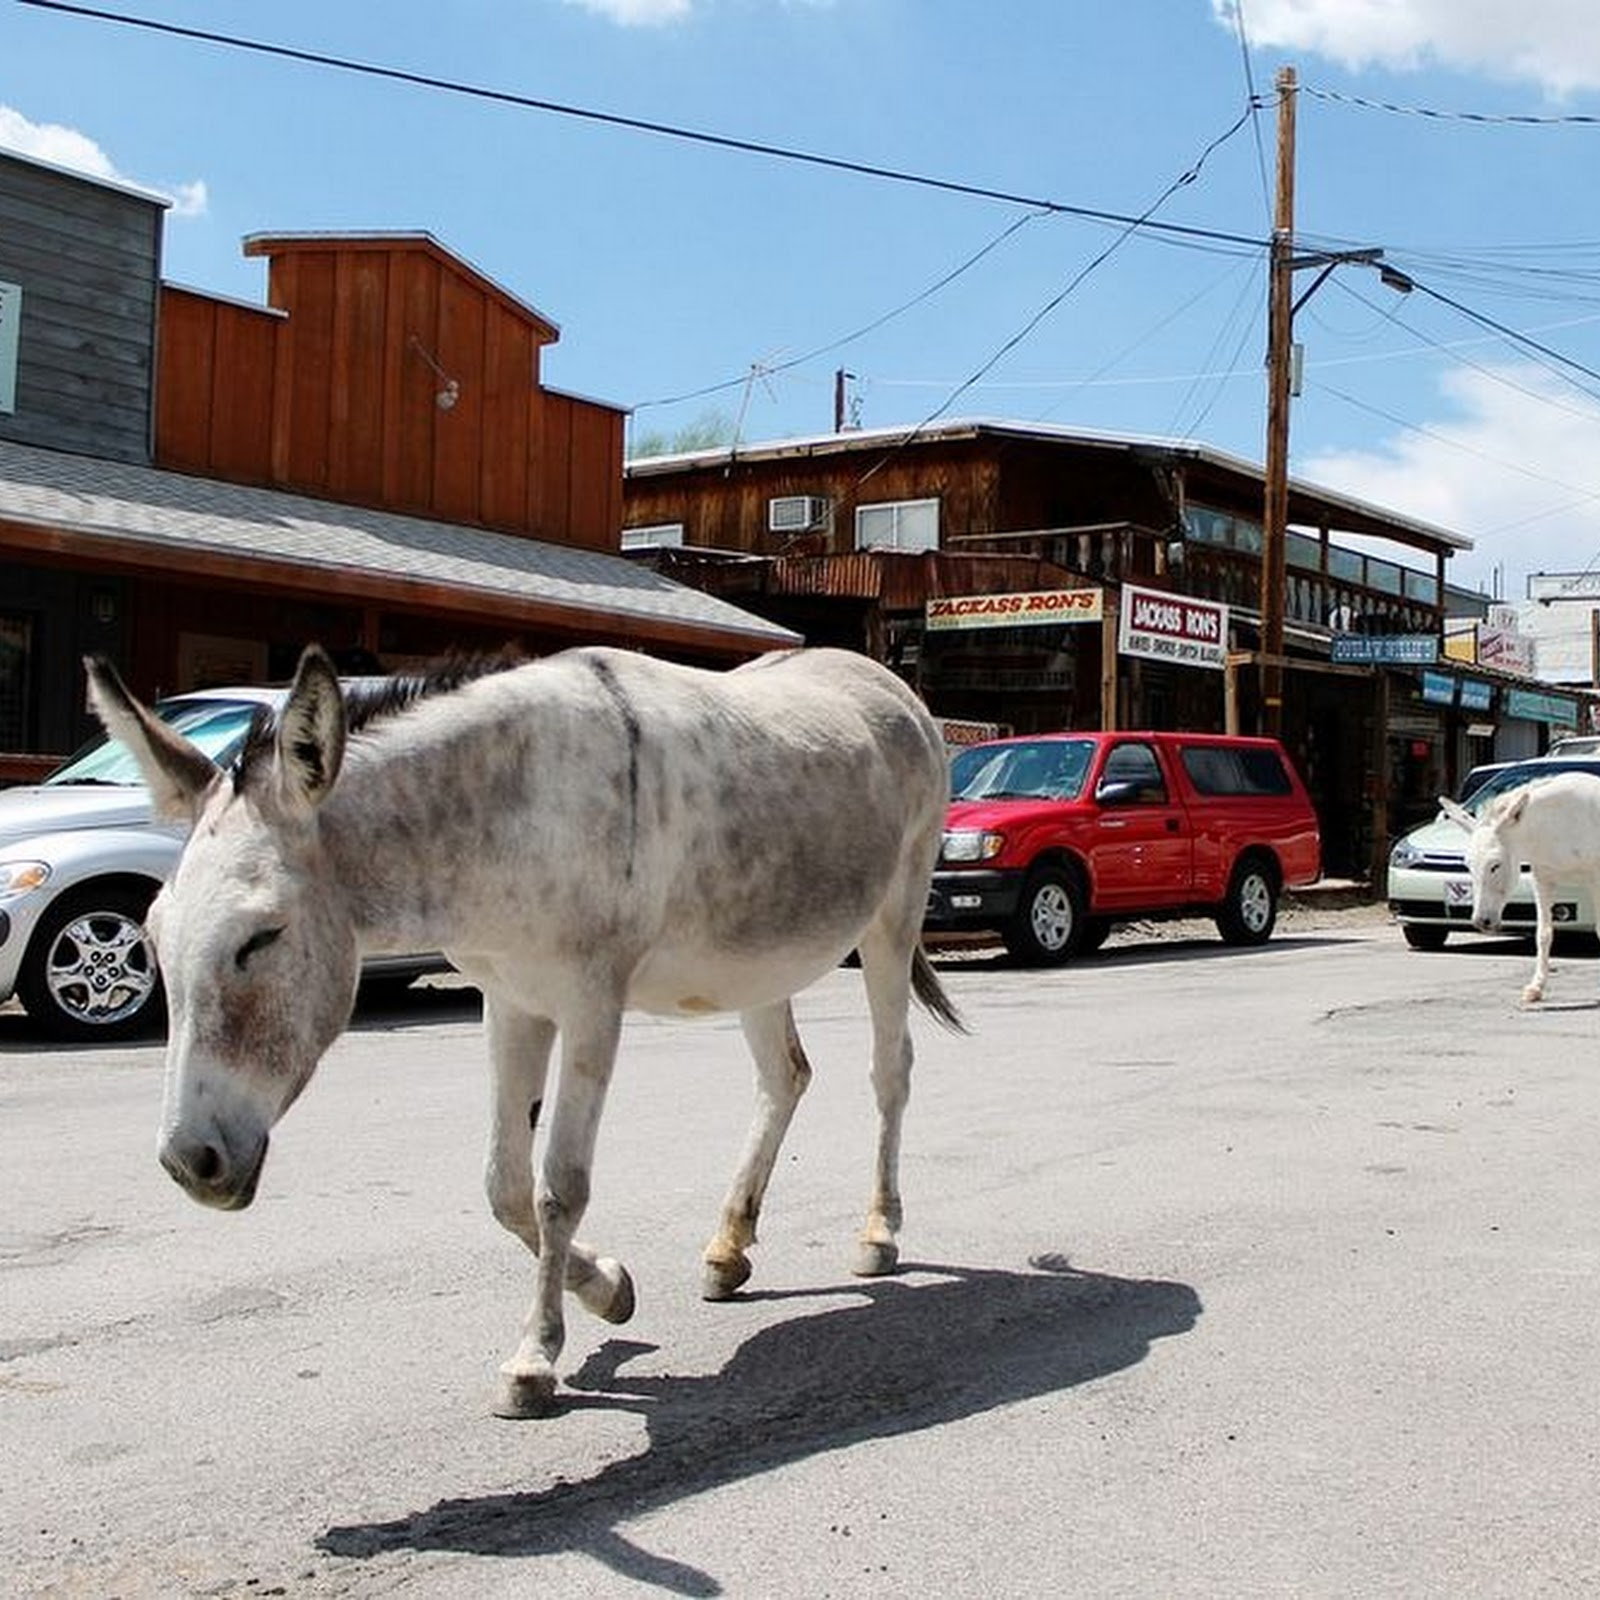 The Wild Burros of Oatman, Arizona